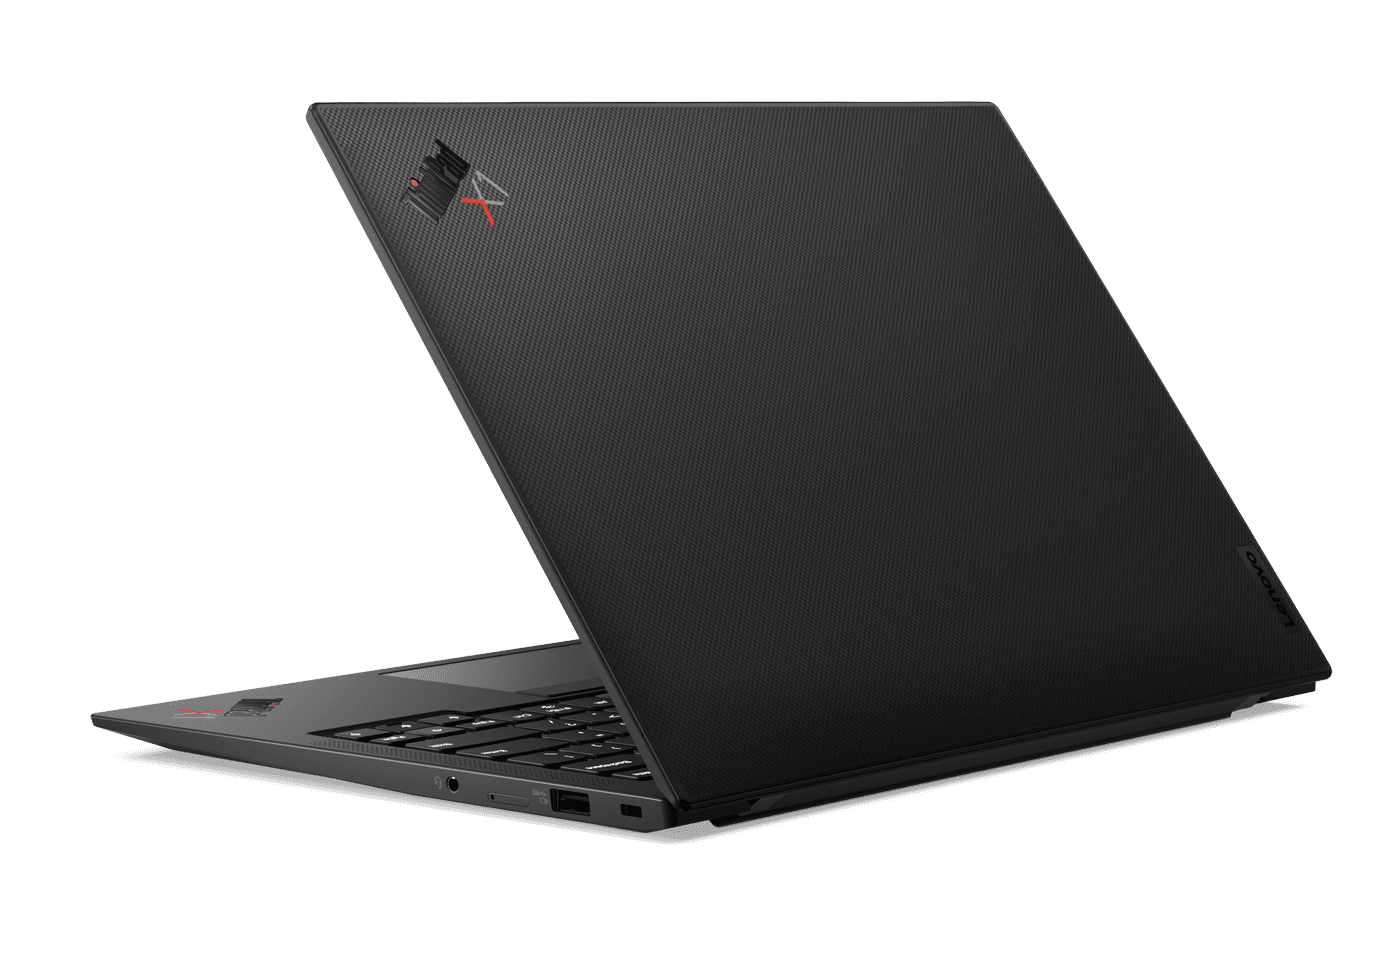 ThinkPad X1 Carbon Gen 9